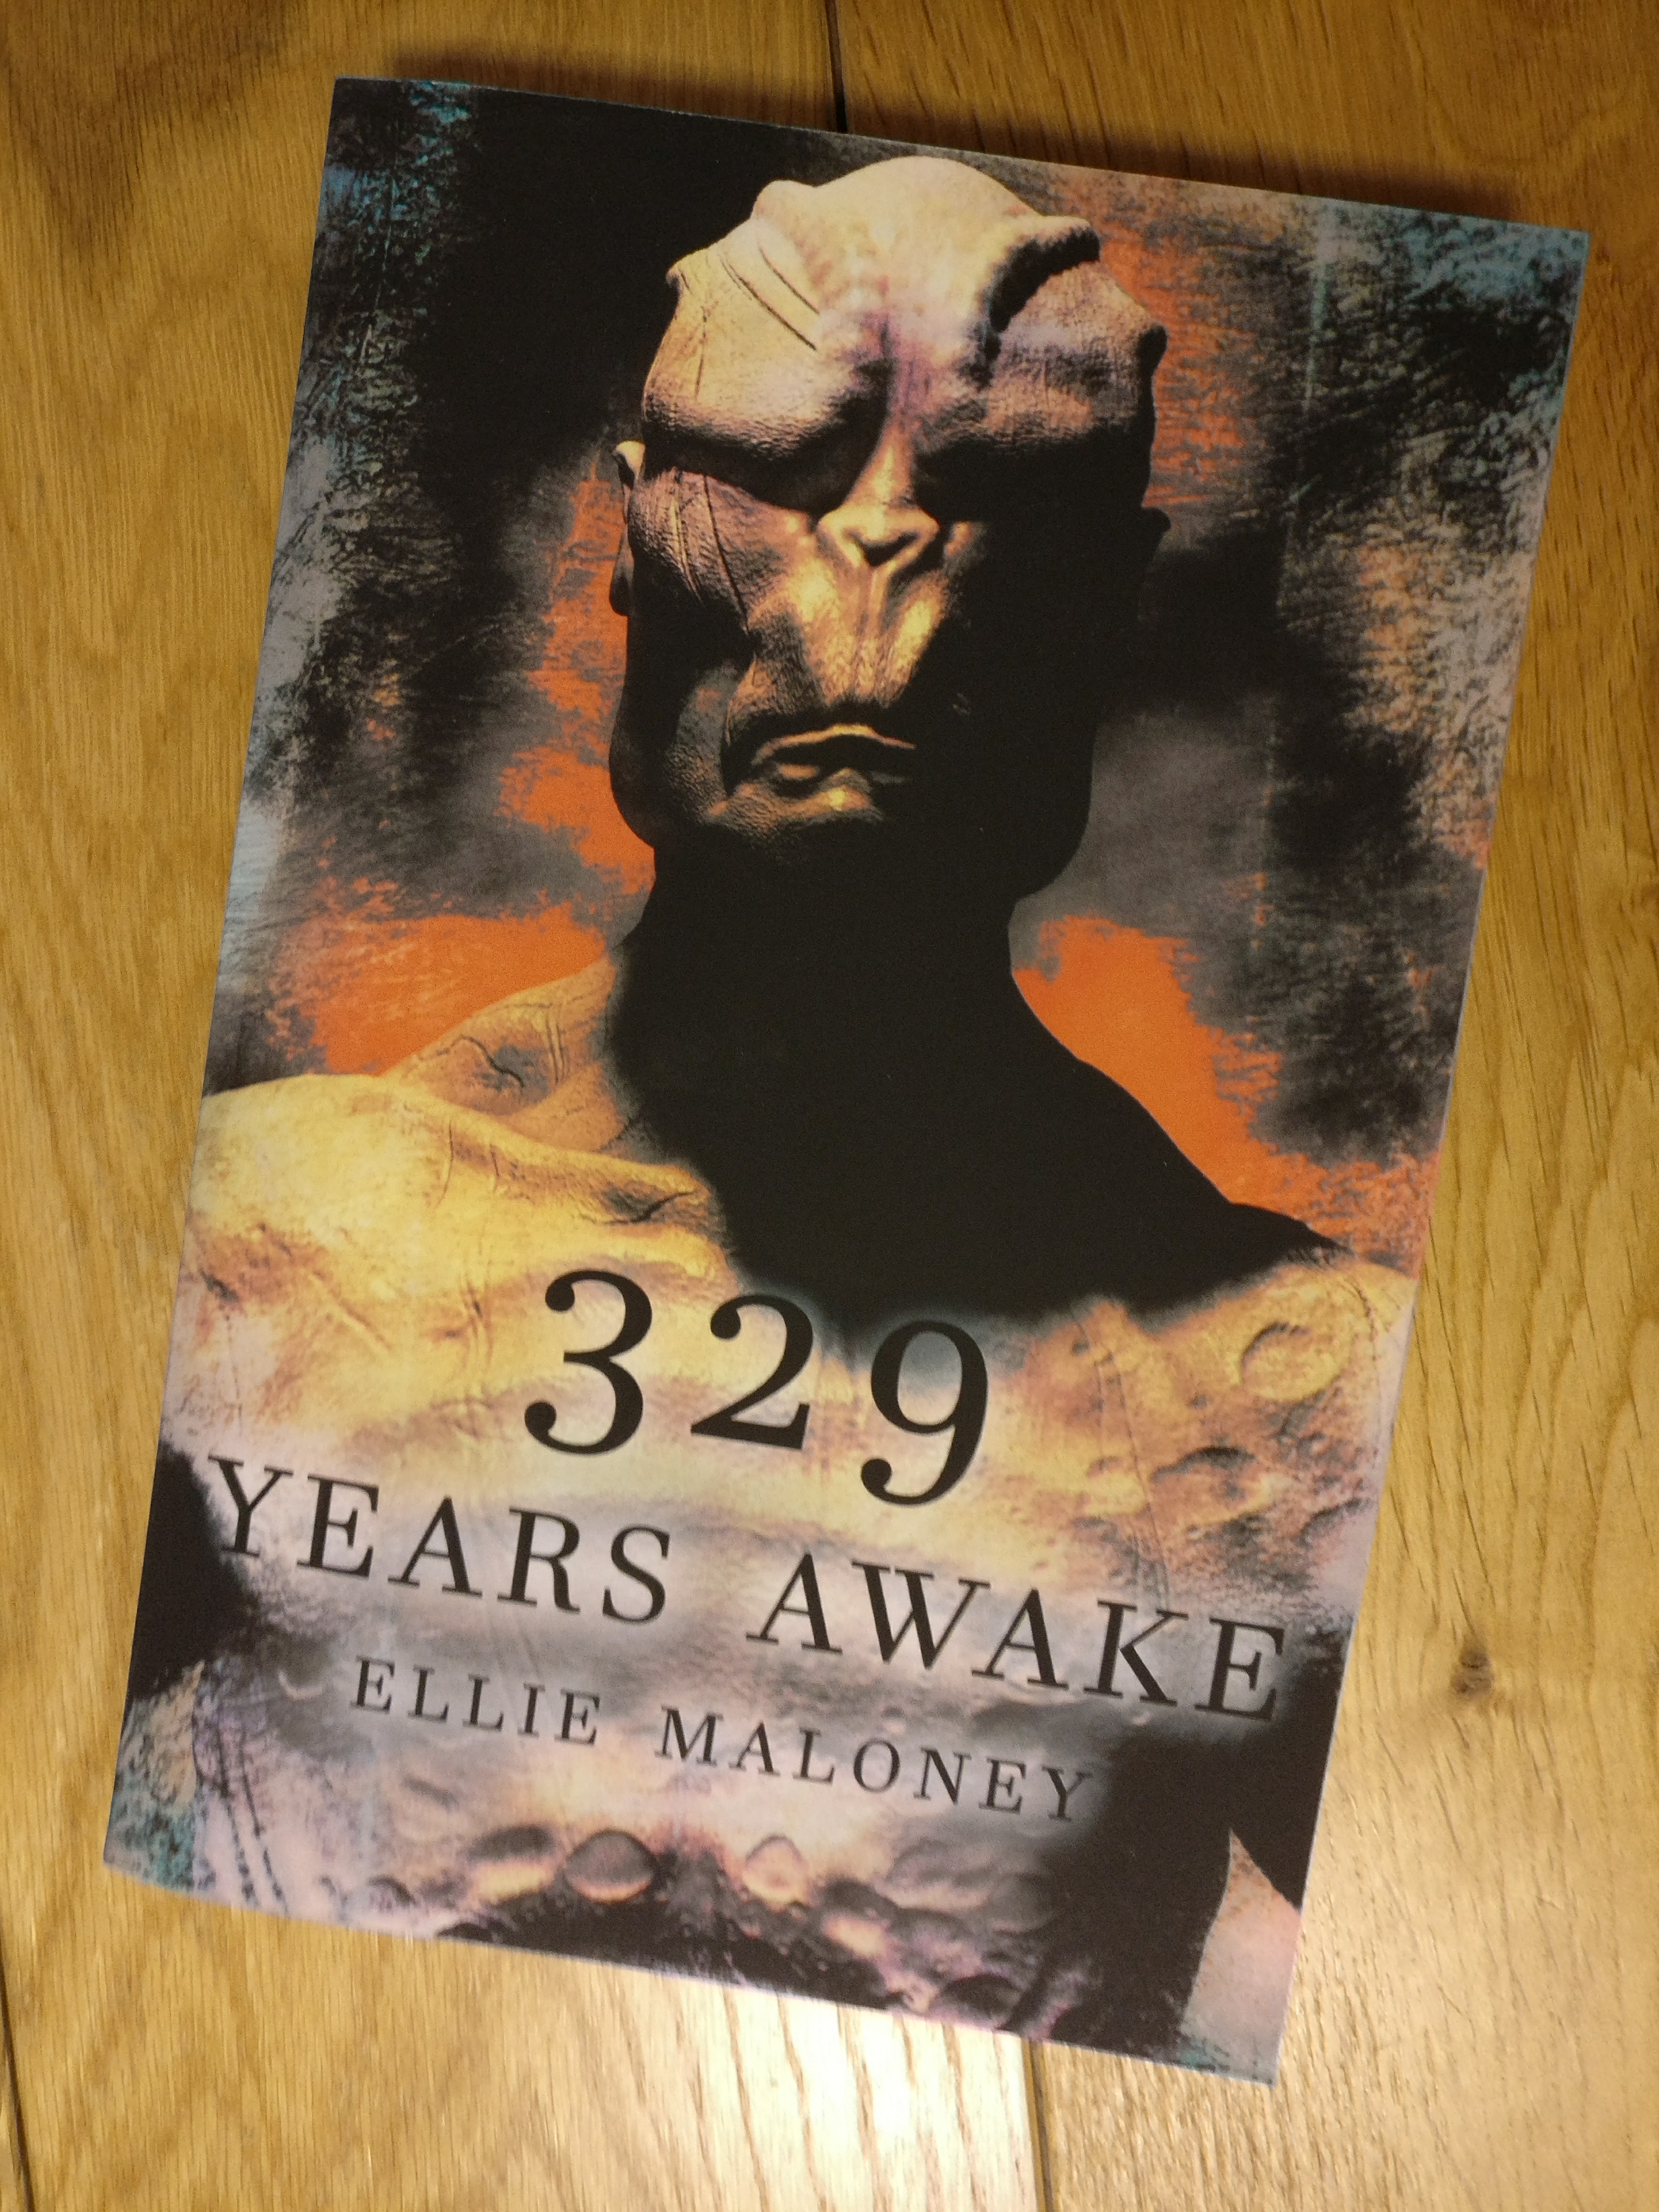 329 Years Awake - Ellie Maloney - Cover Page Illustration